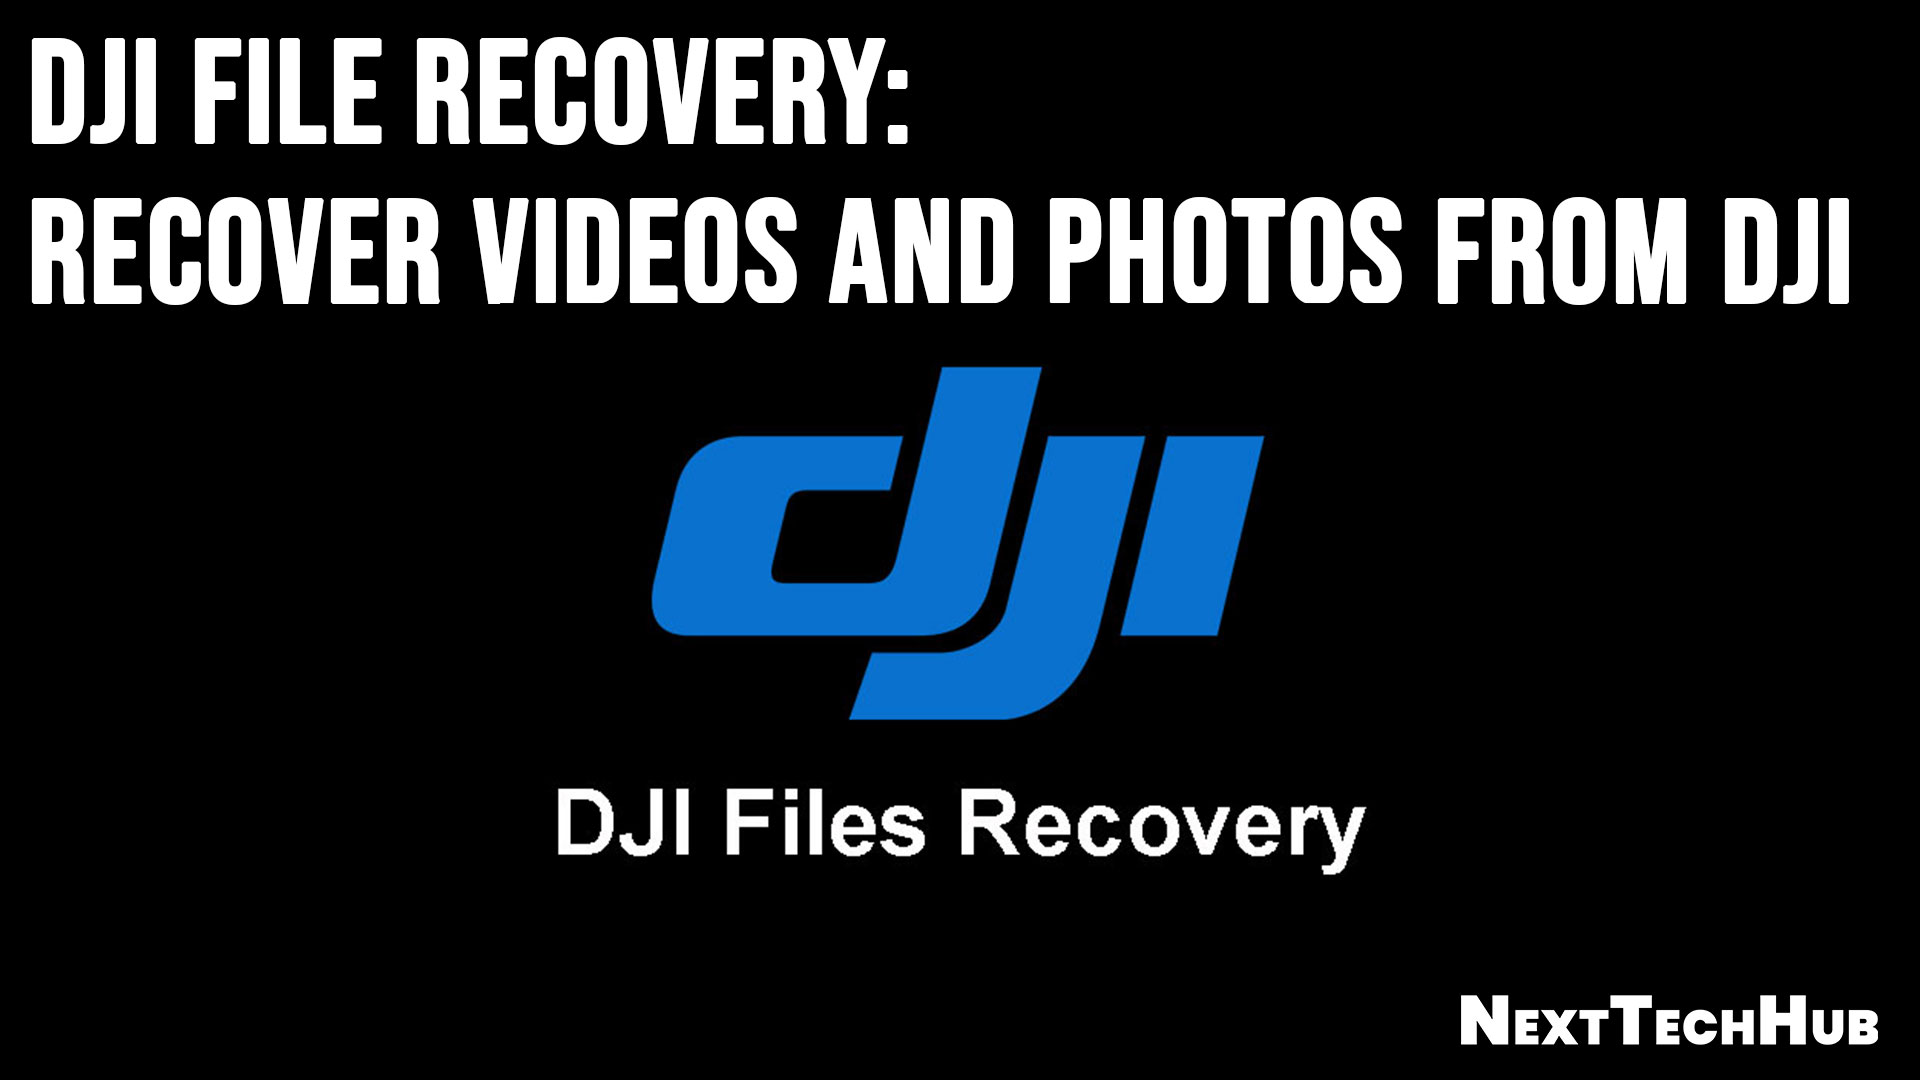 DJI File Recovery Recover Videos and Photos from DJI